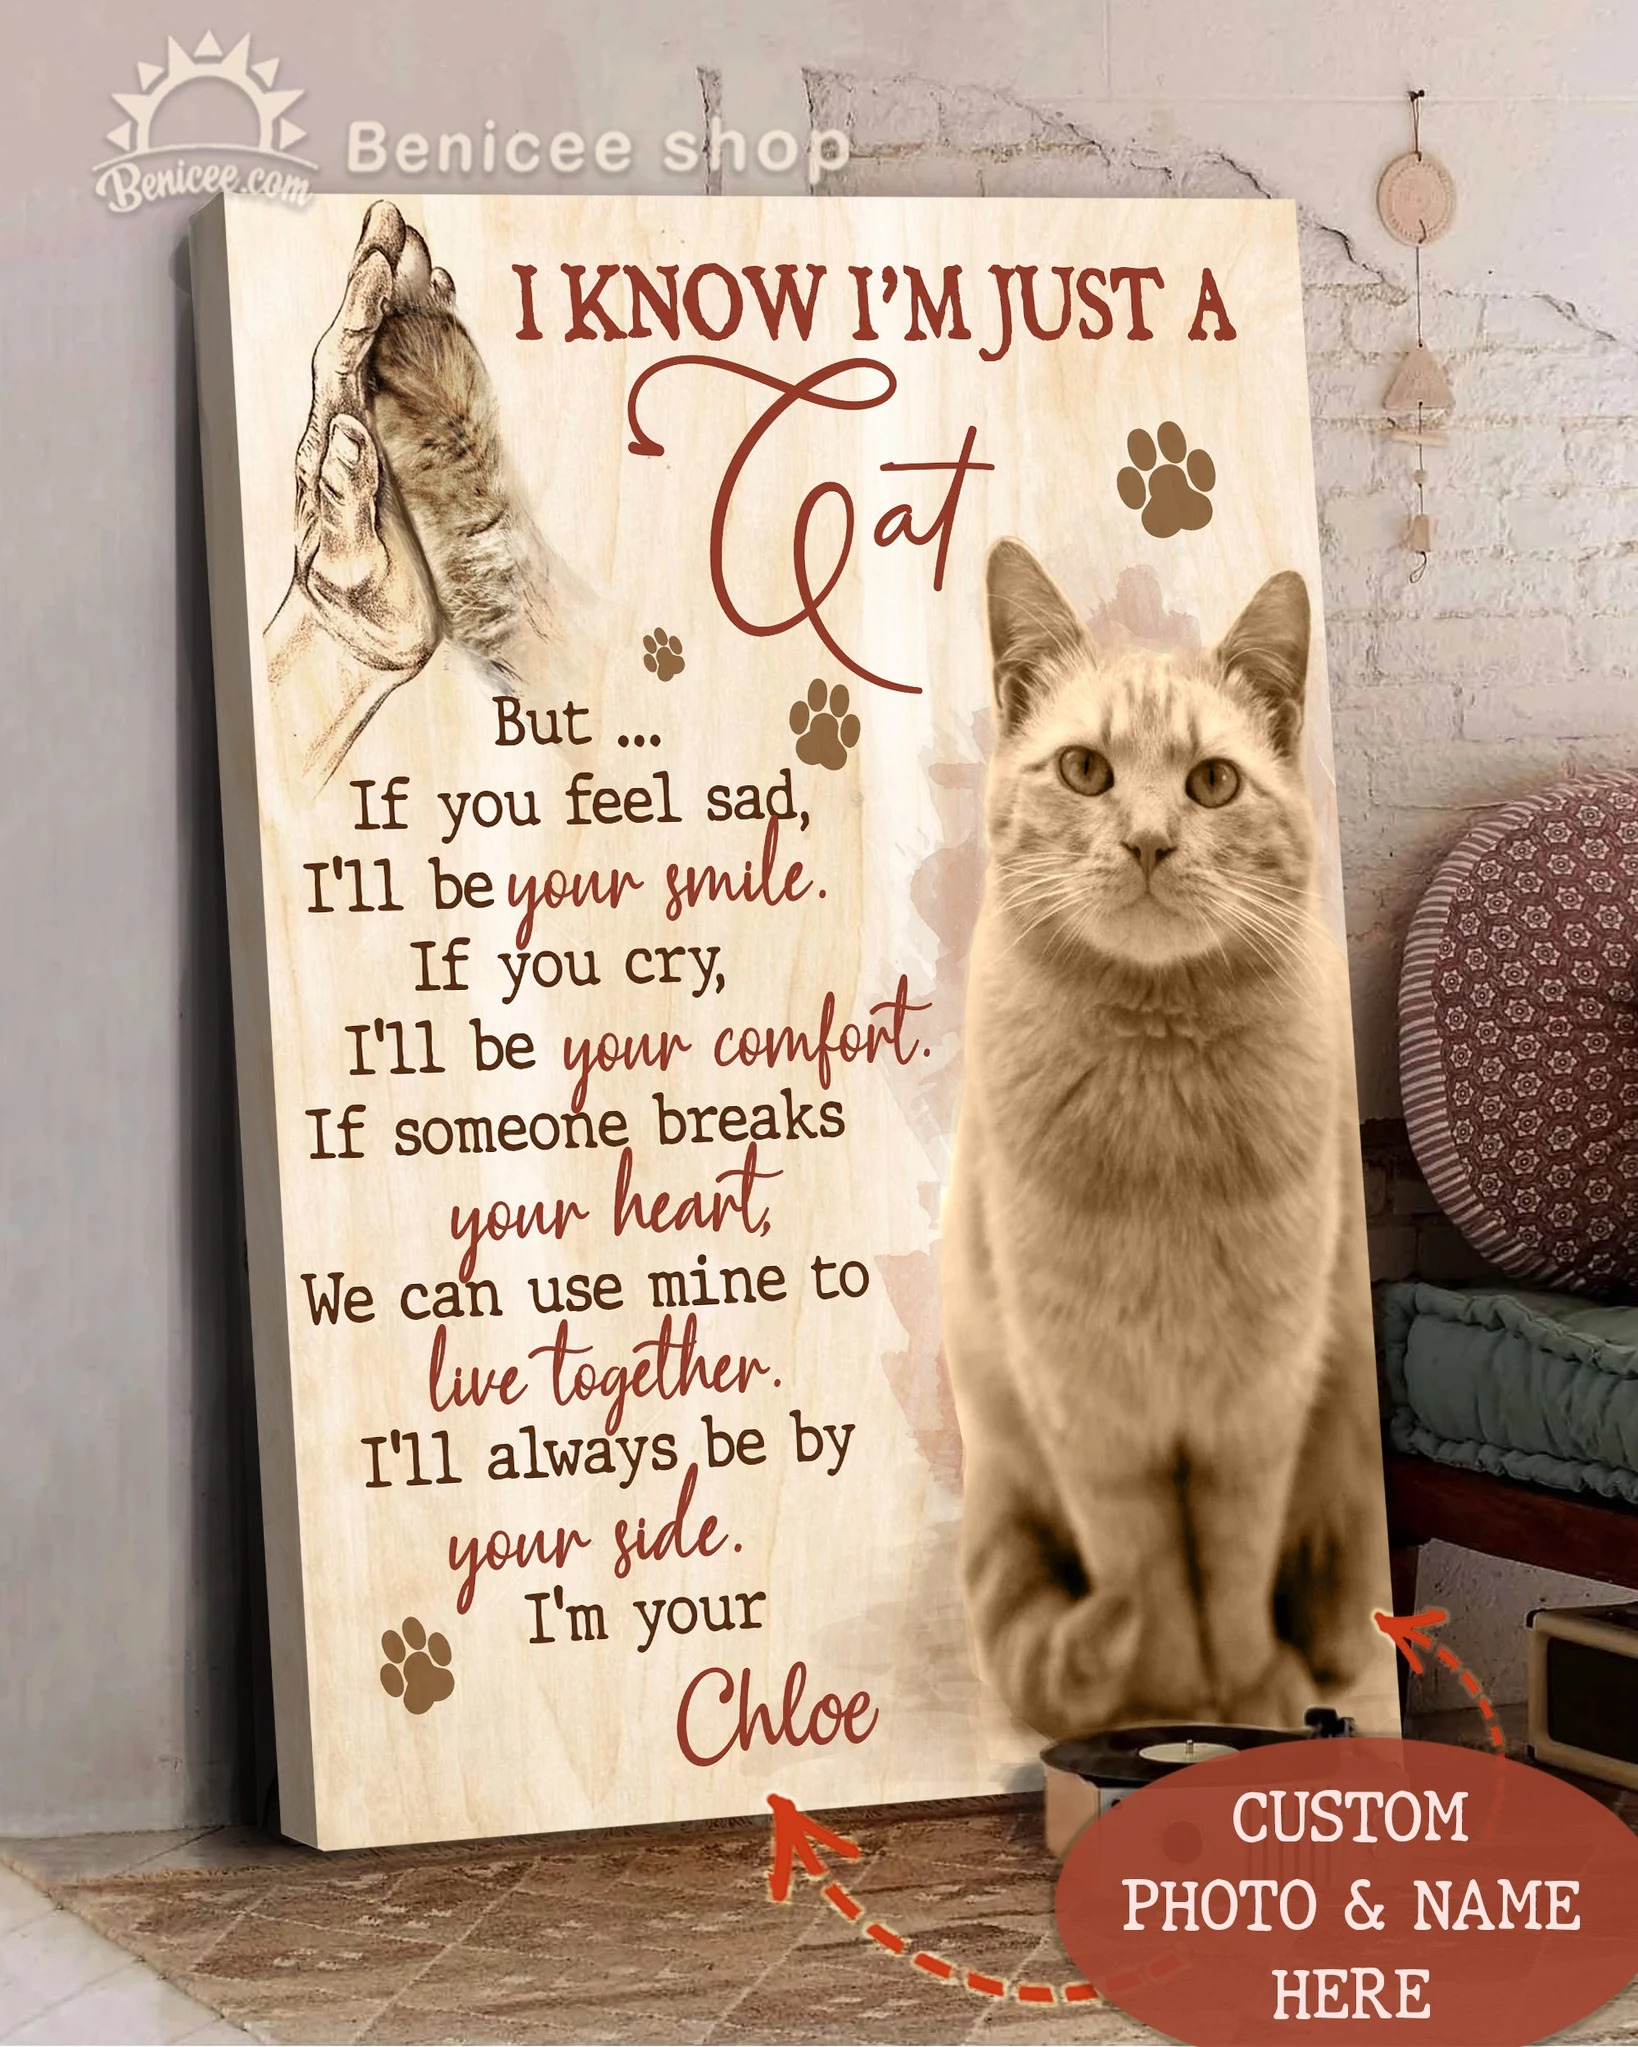 Custom photo and name i know i'm just a cat canvas prints 1